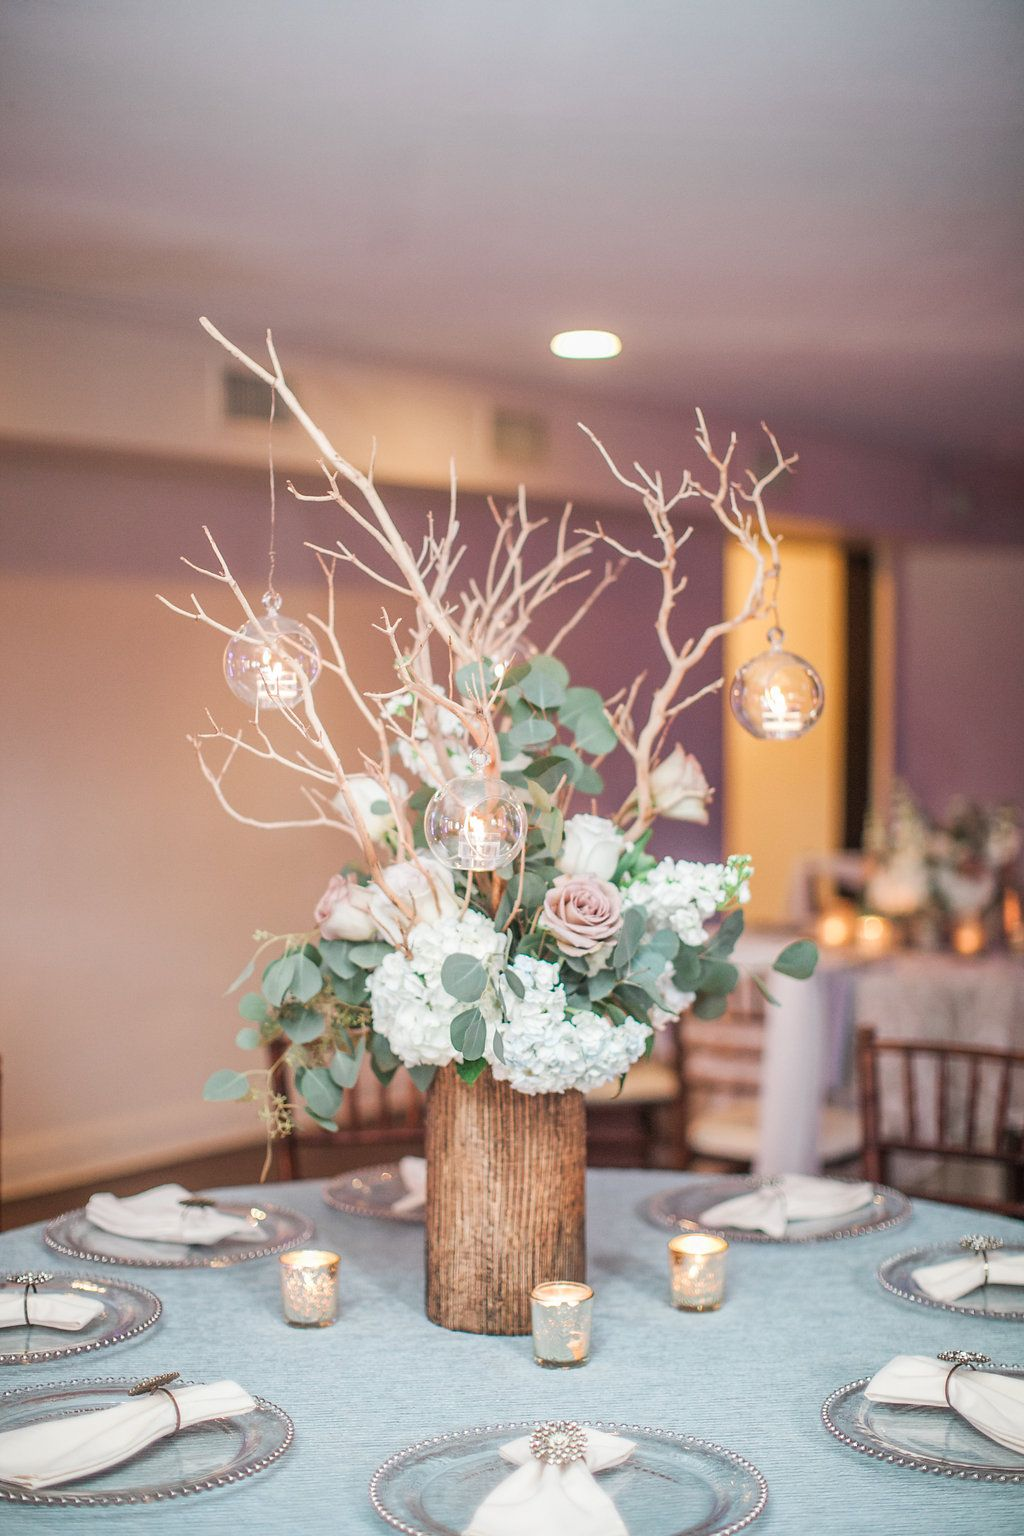 Wedding Table Centerpiece And Decor Our Wooden Cylinder Vase With